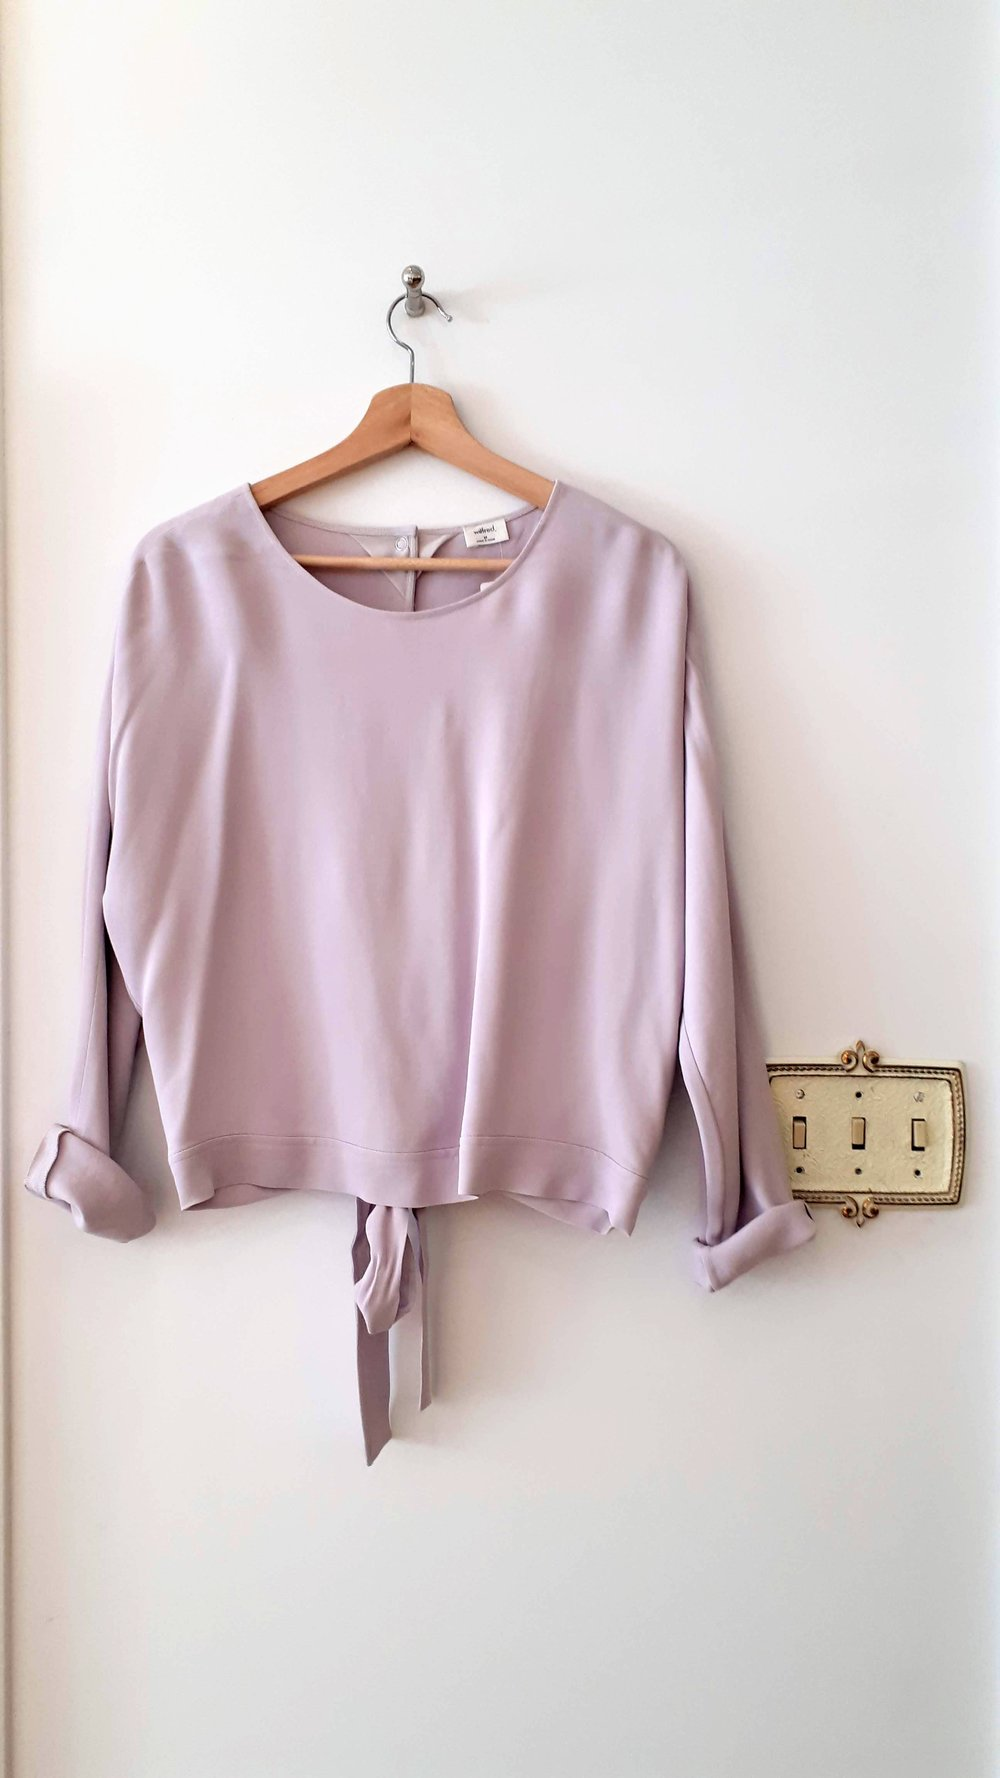 Wilfred top; Size M, $34